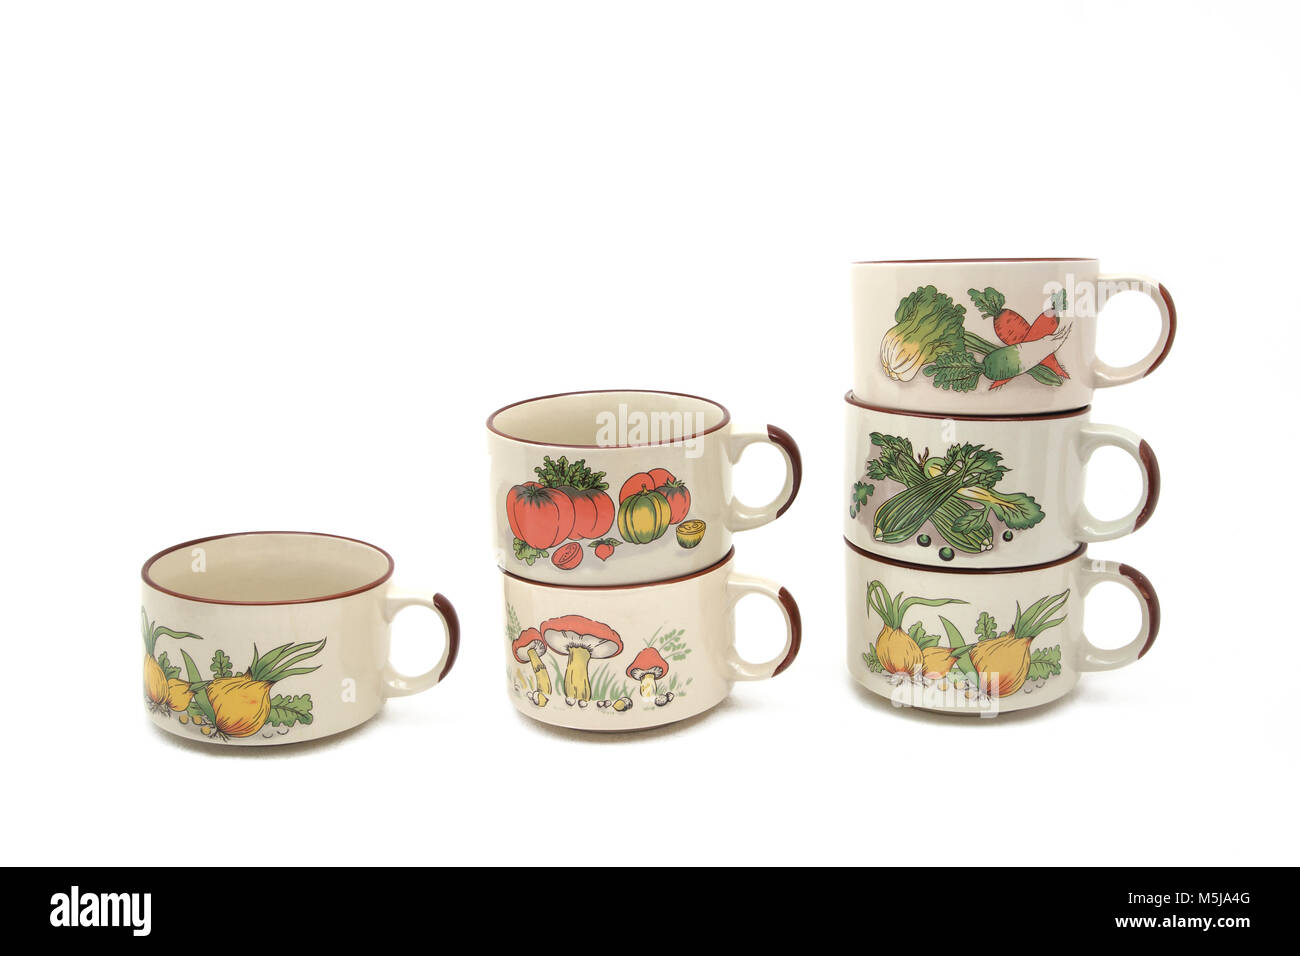 Vintage 1970's Shell Petrol Promotional Tureen Bowl and Soup Mugs with Vegetable Design - Stock Image